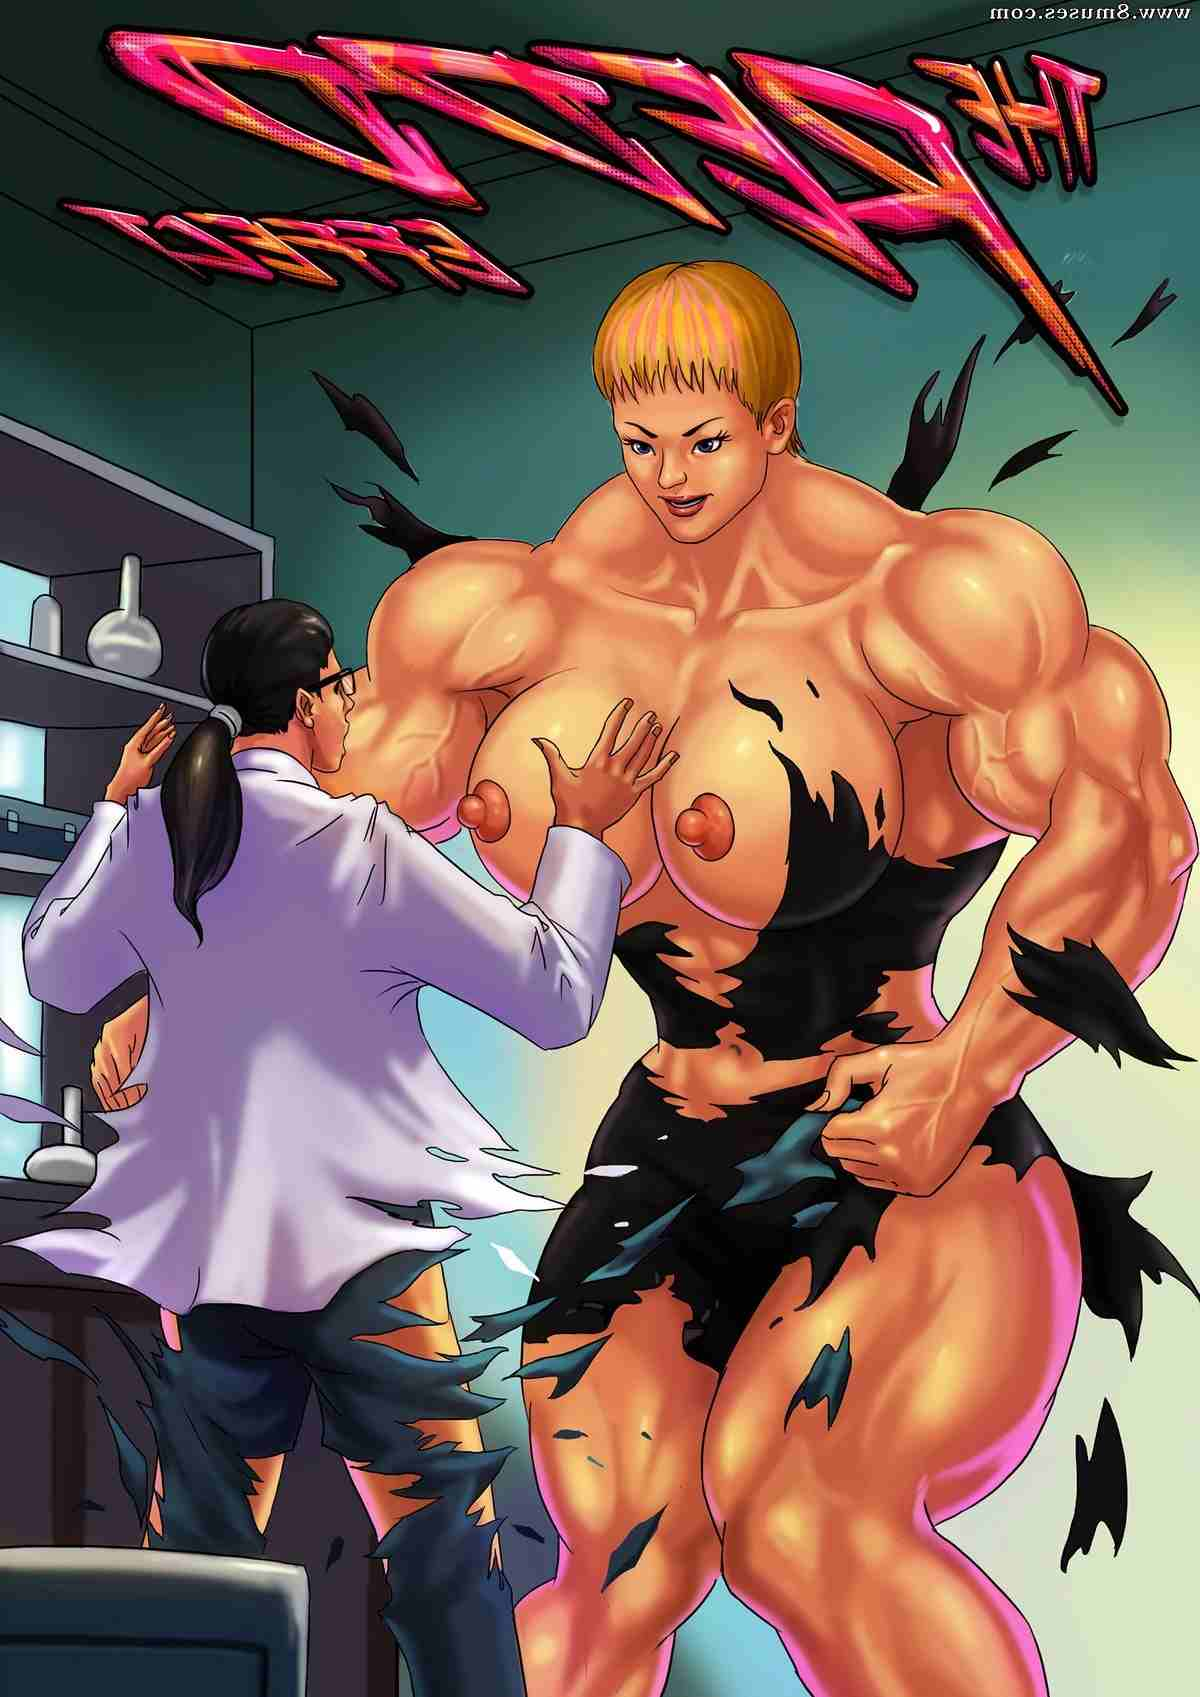 MuscleFan-Comics/The-Redd-Effect The_Redd_Effect__8muses_-_Sex_and_Porn_Comics.jpg